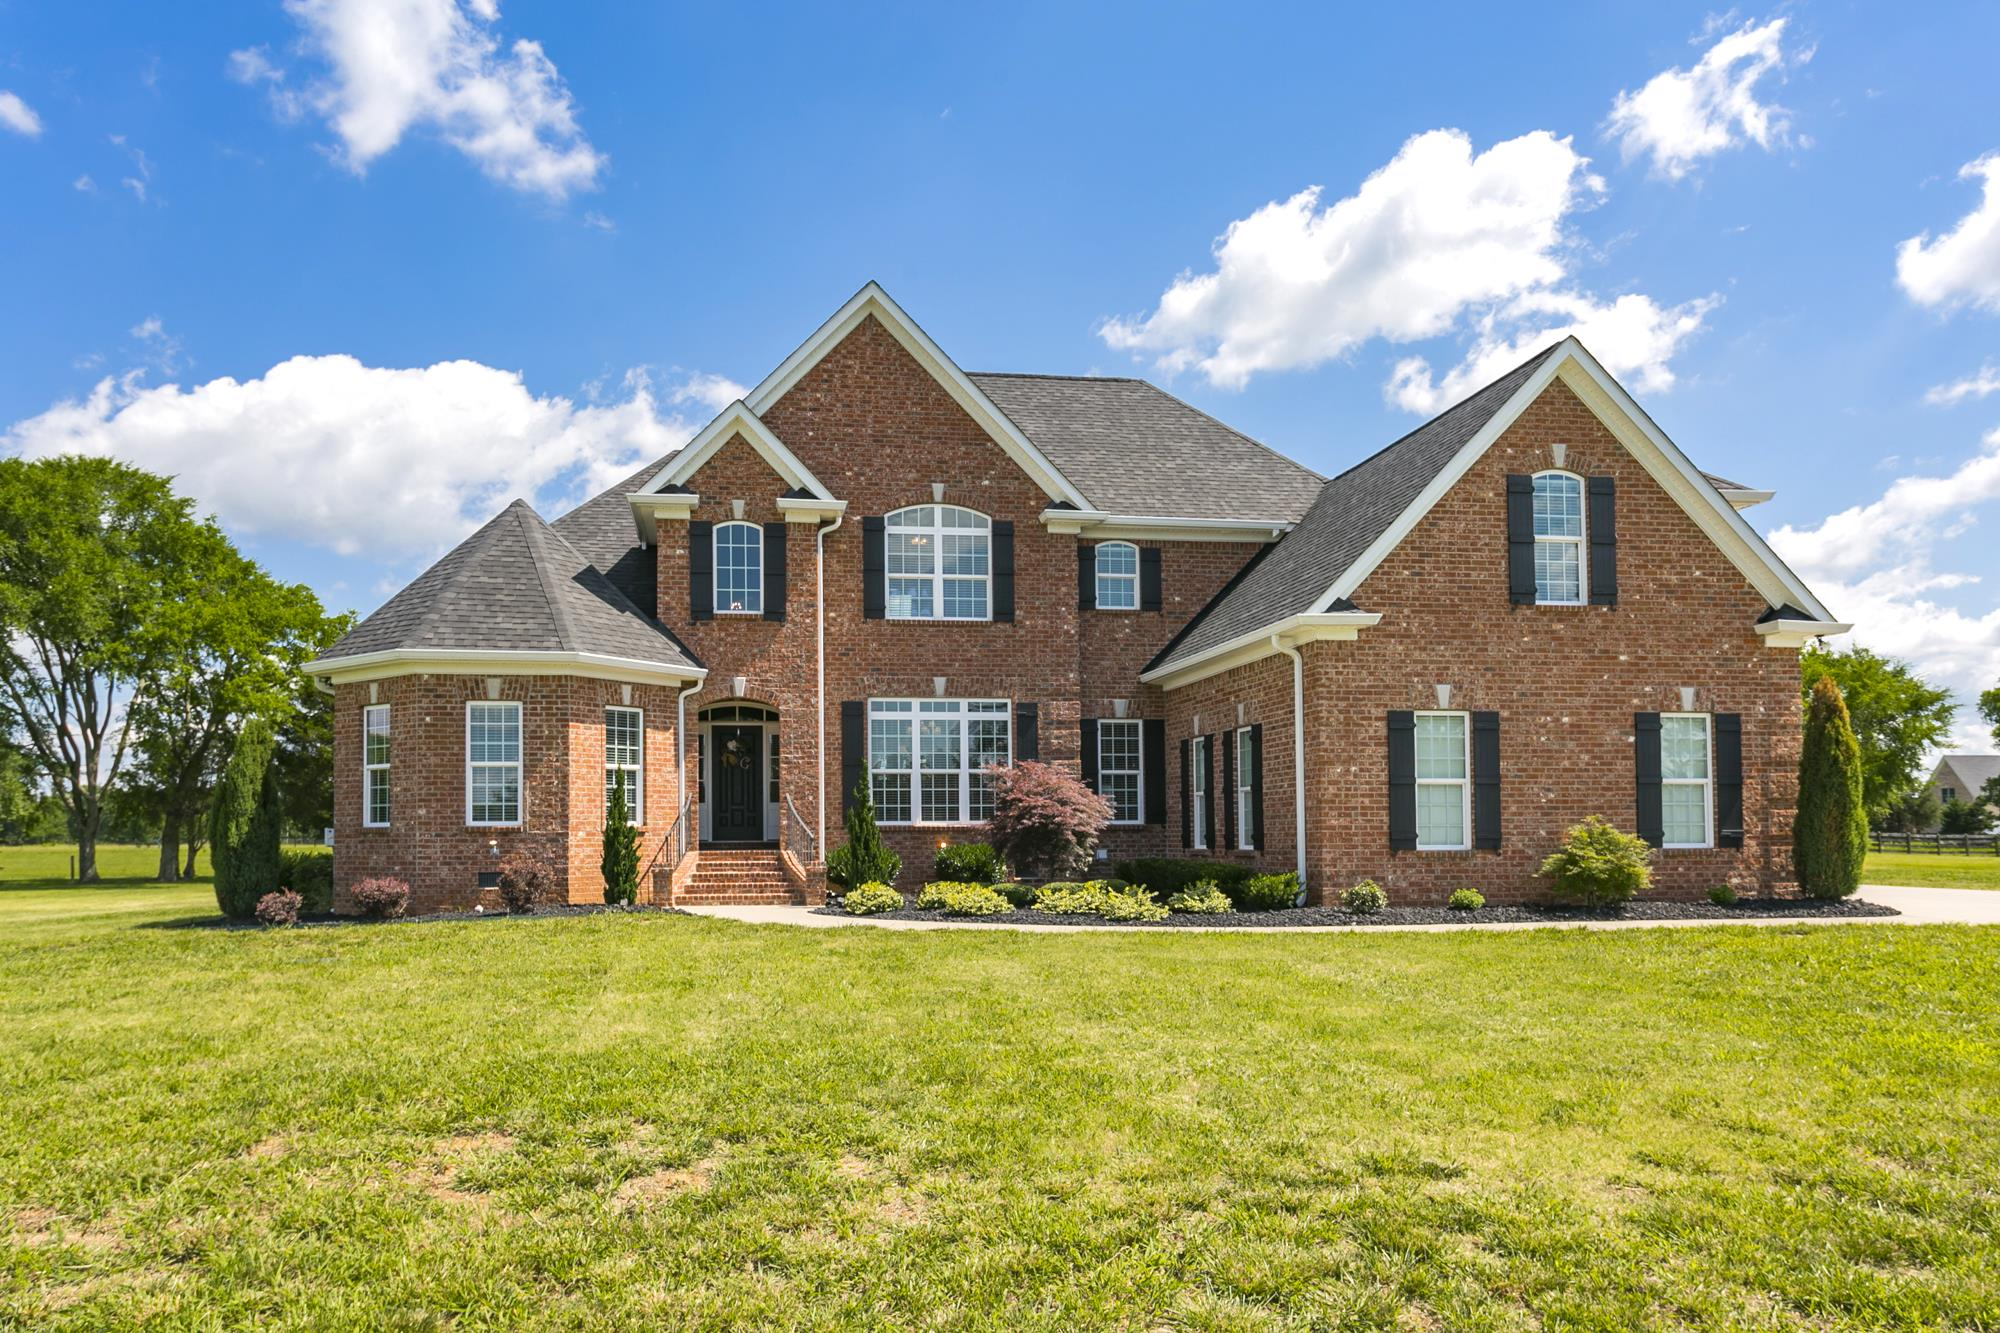 3845 Triple Crown Dr, Murfreesboro, TN 37127 - Murfreesboro, TN real estate listing